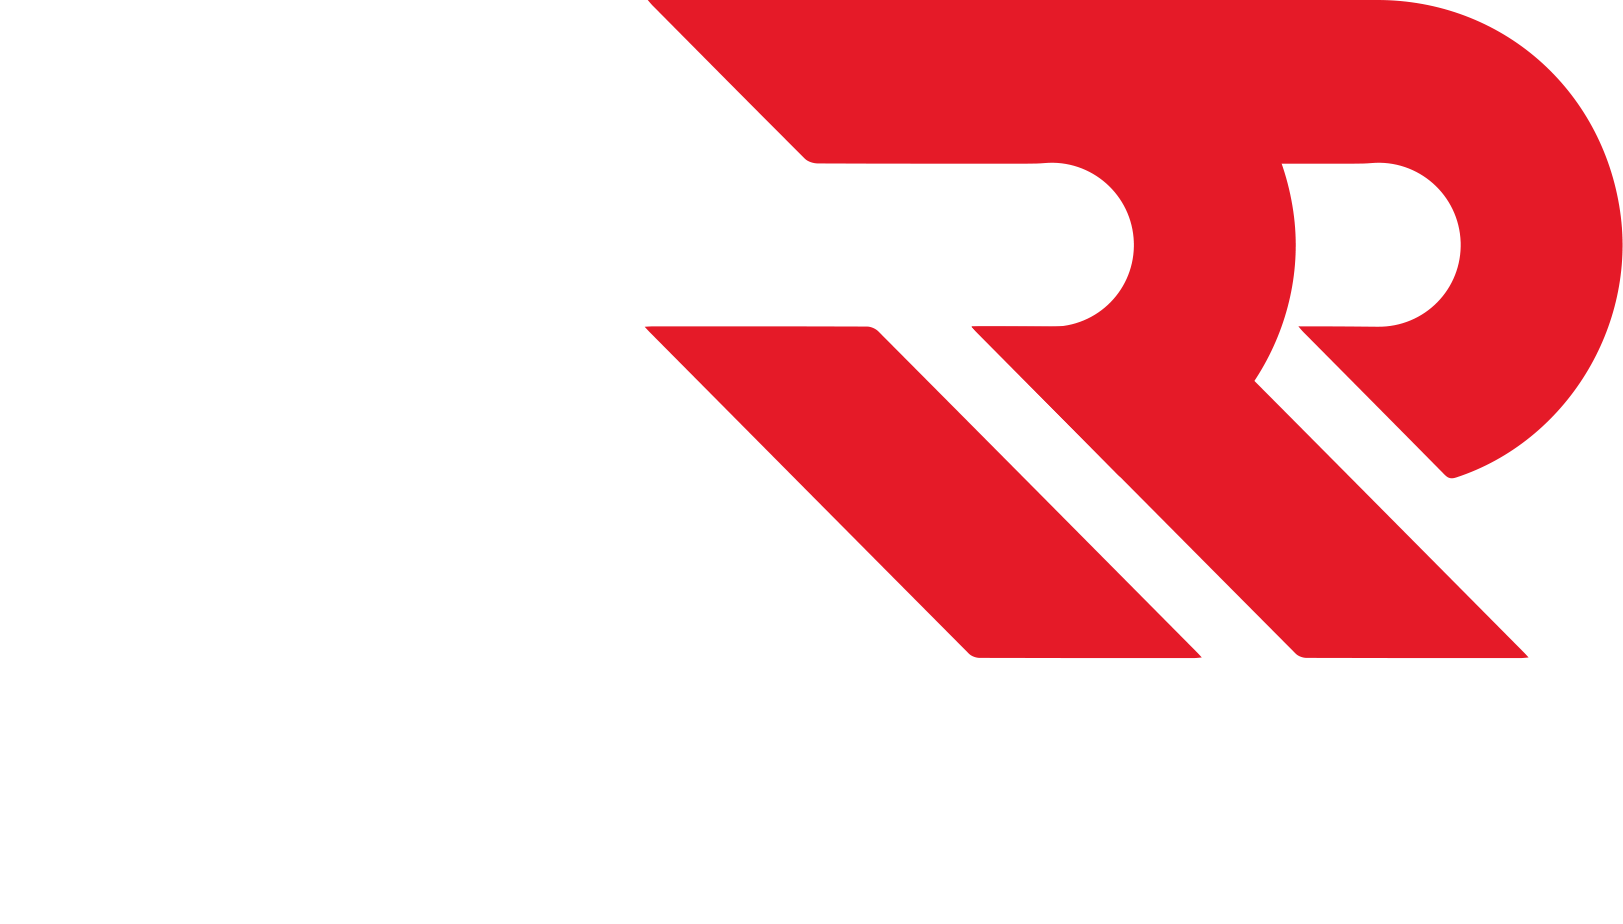 rally result logo